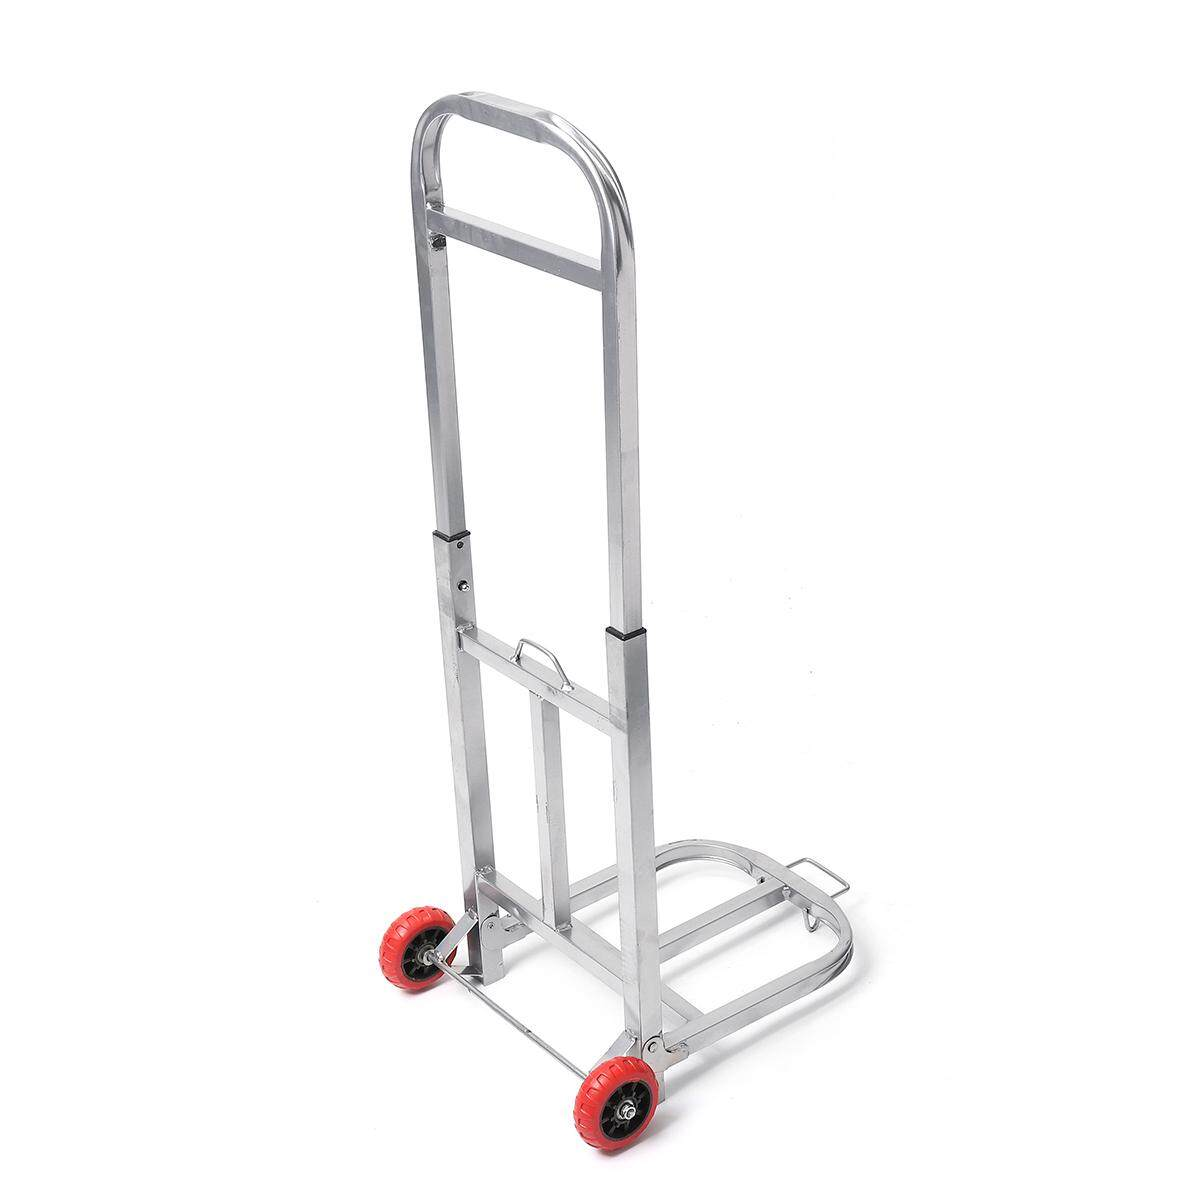 20kg Heavy Duty Lightweight Folding Foldable Hand Cart Trolley Barrow Sack Truck - Intl By Audew.